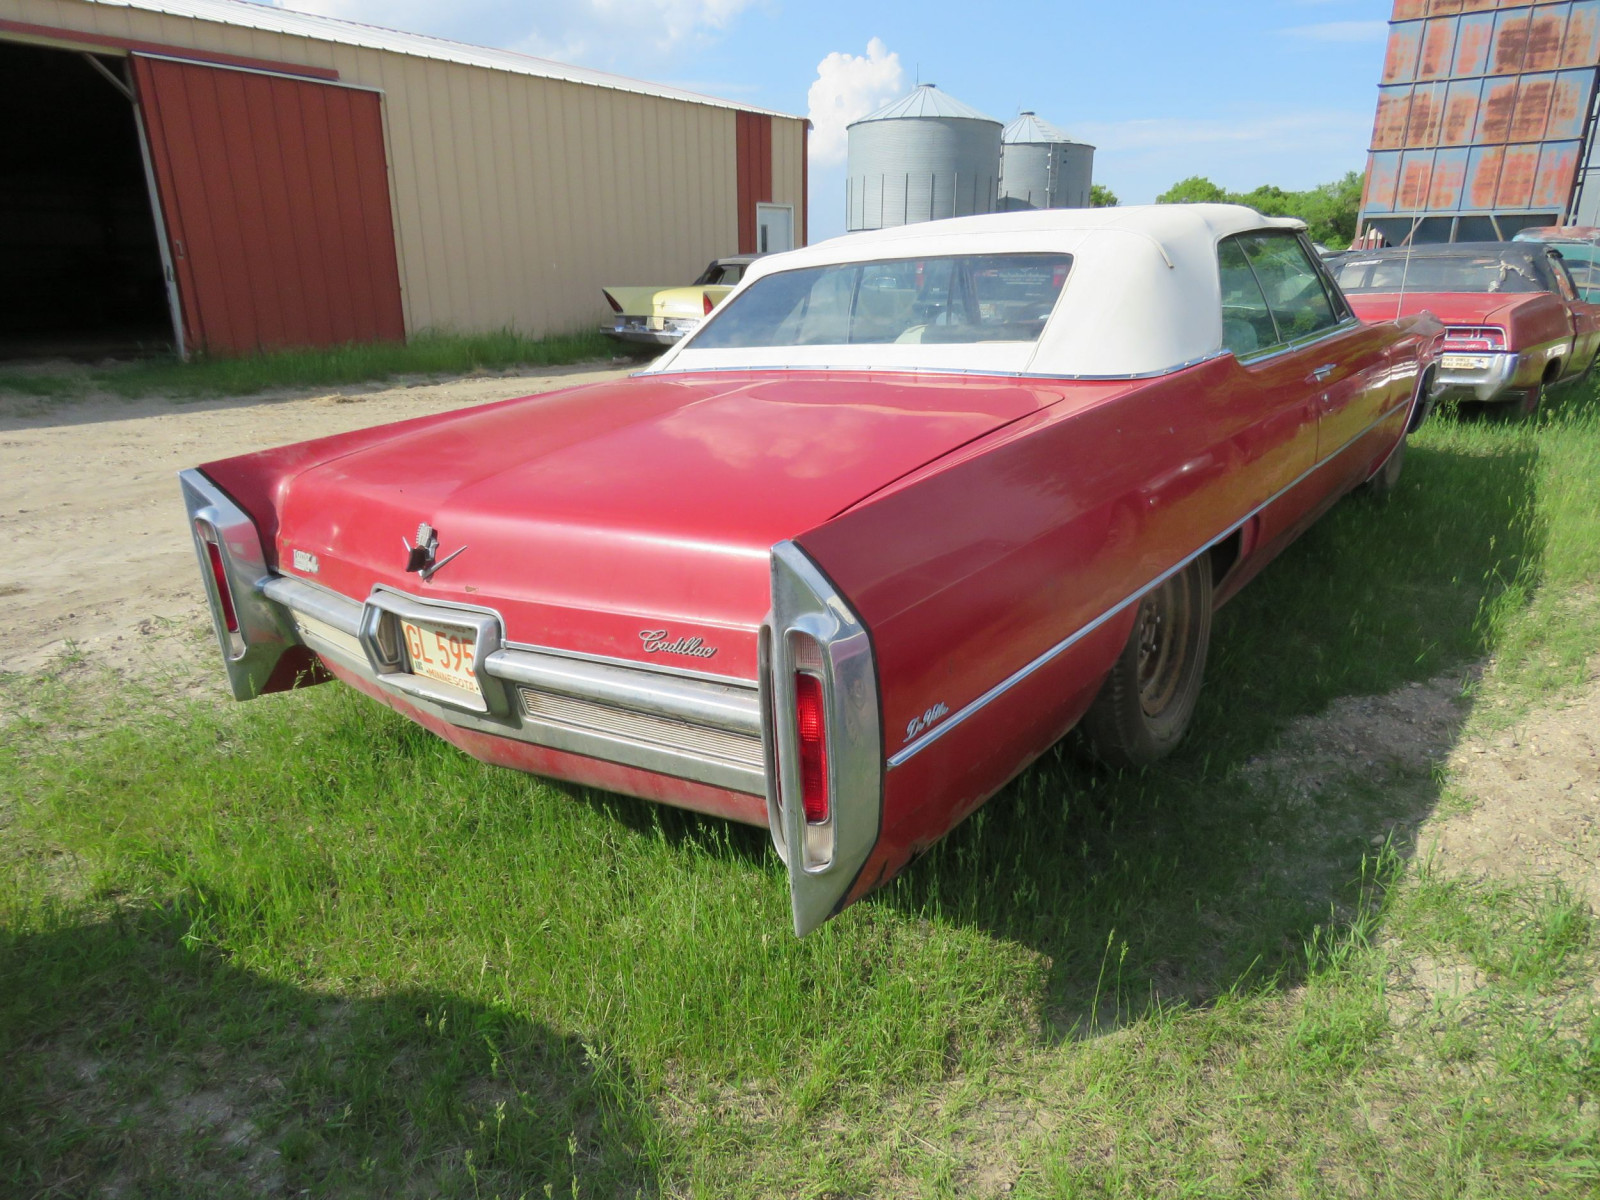 1961 Cadillac Deville Convertible F6122546 - Image 5